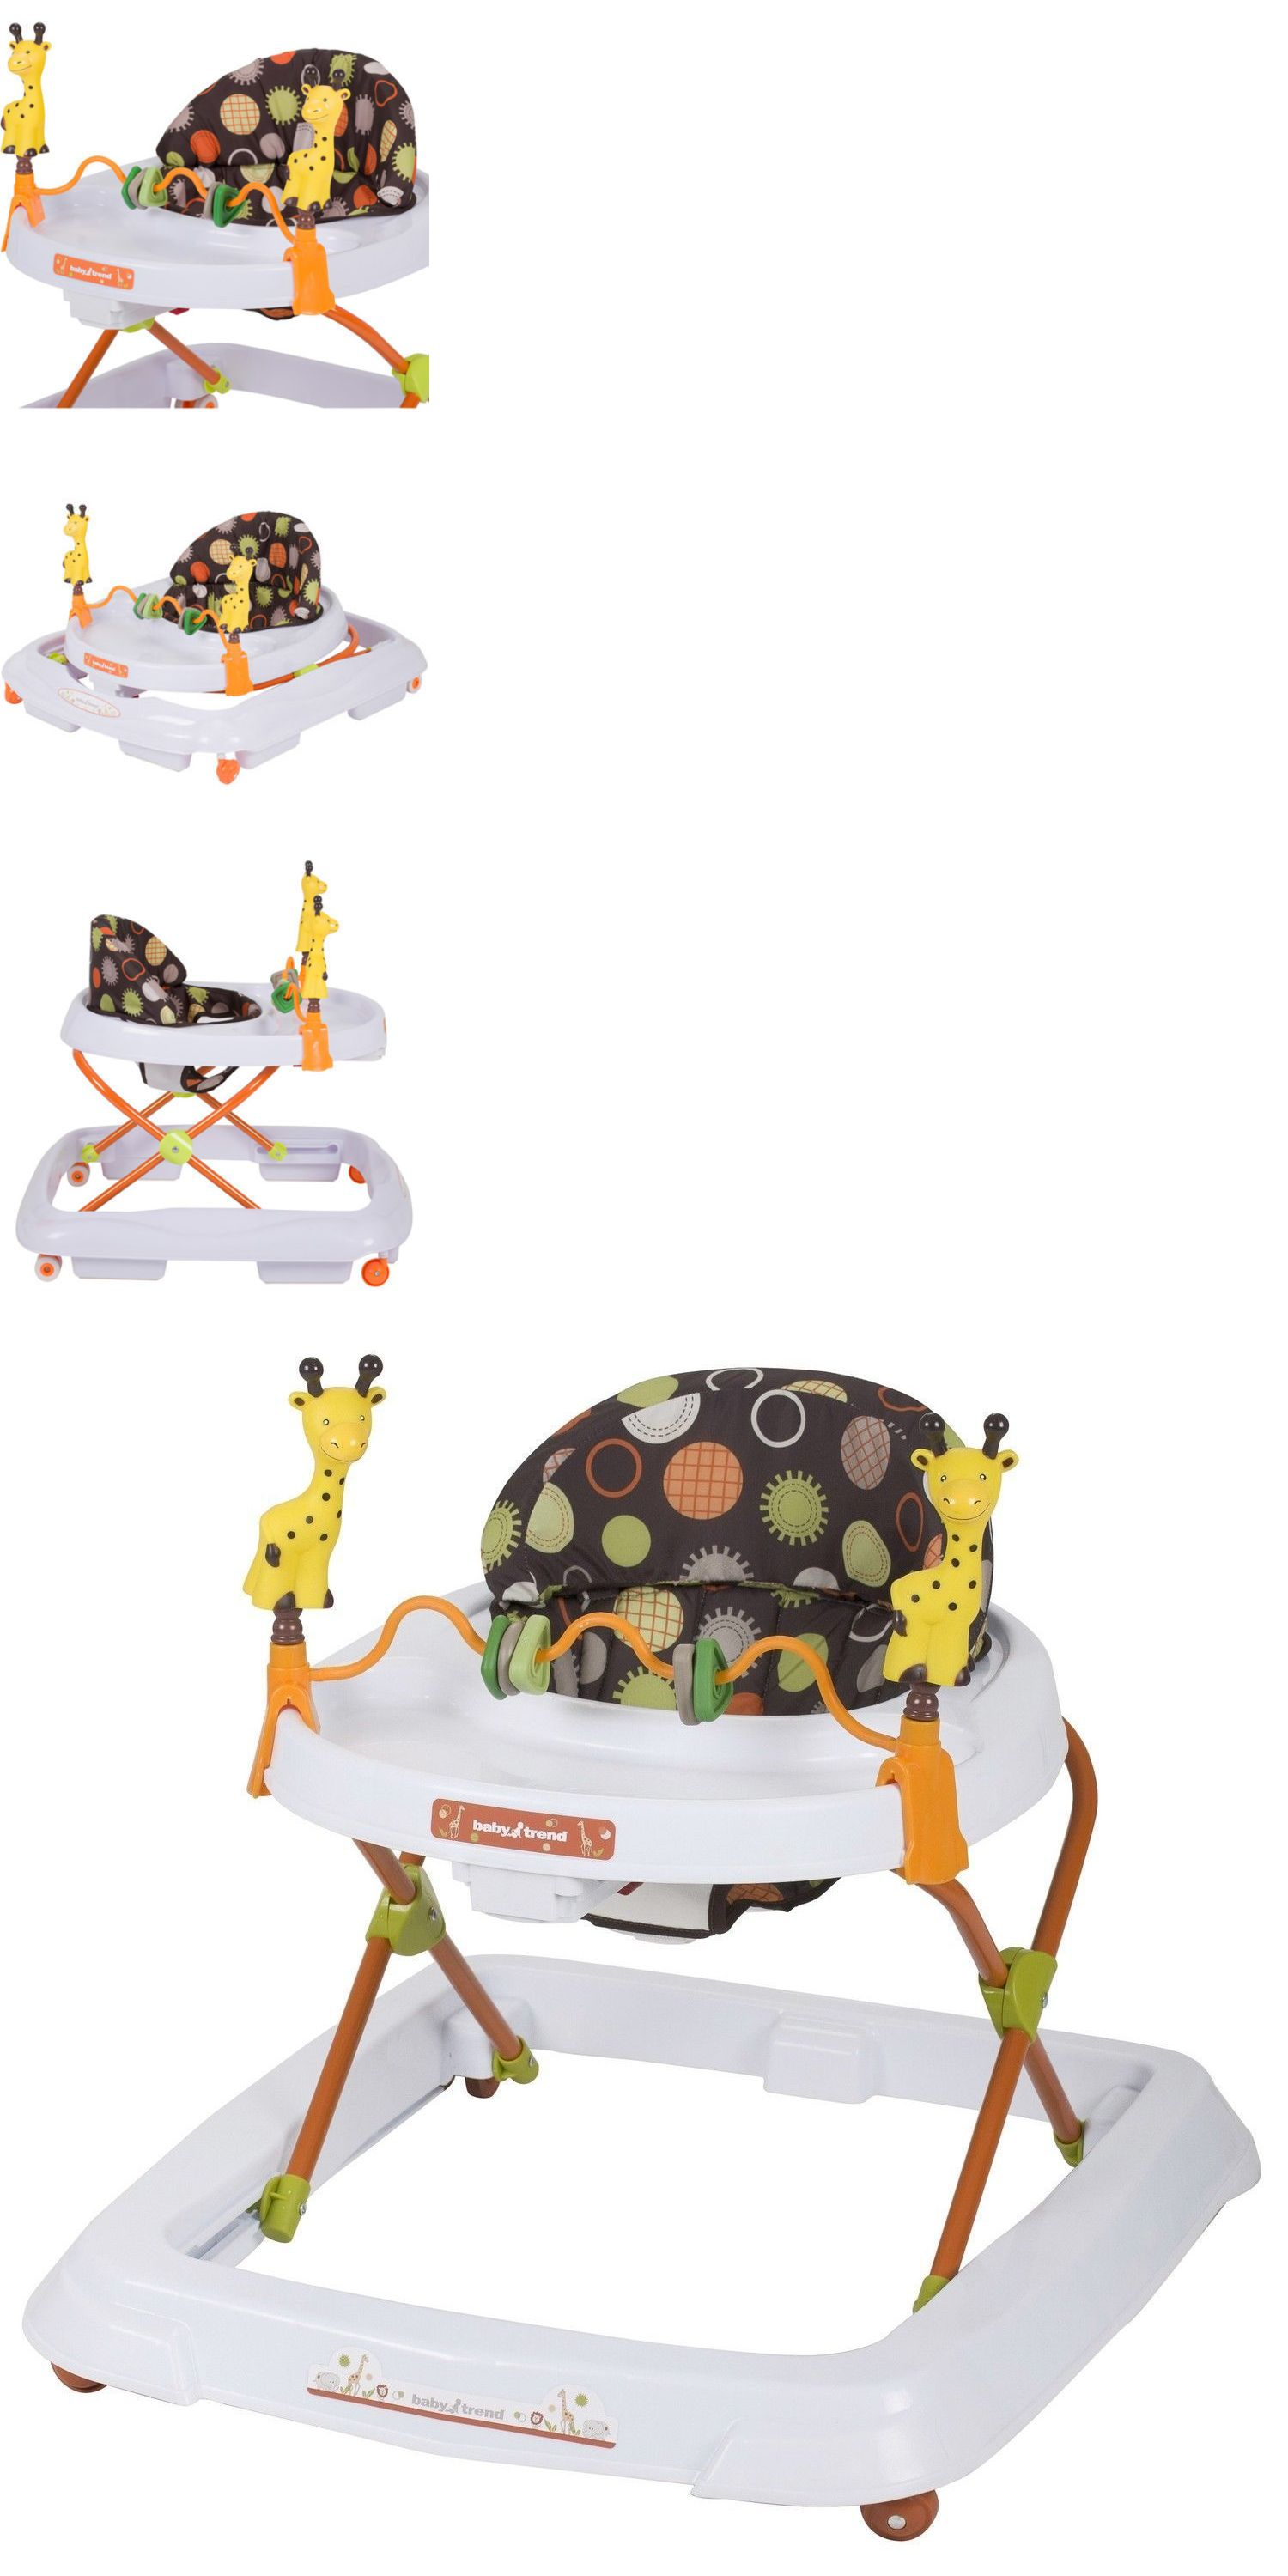 Infant Learning Chair Walkers 134282 Baby Infant Walker Activity Seat Walking